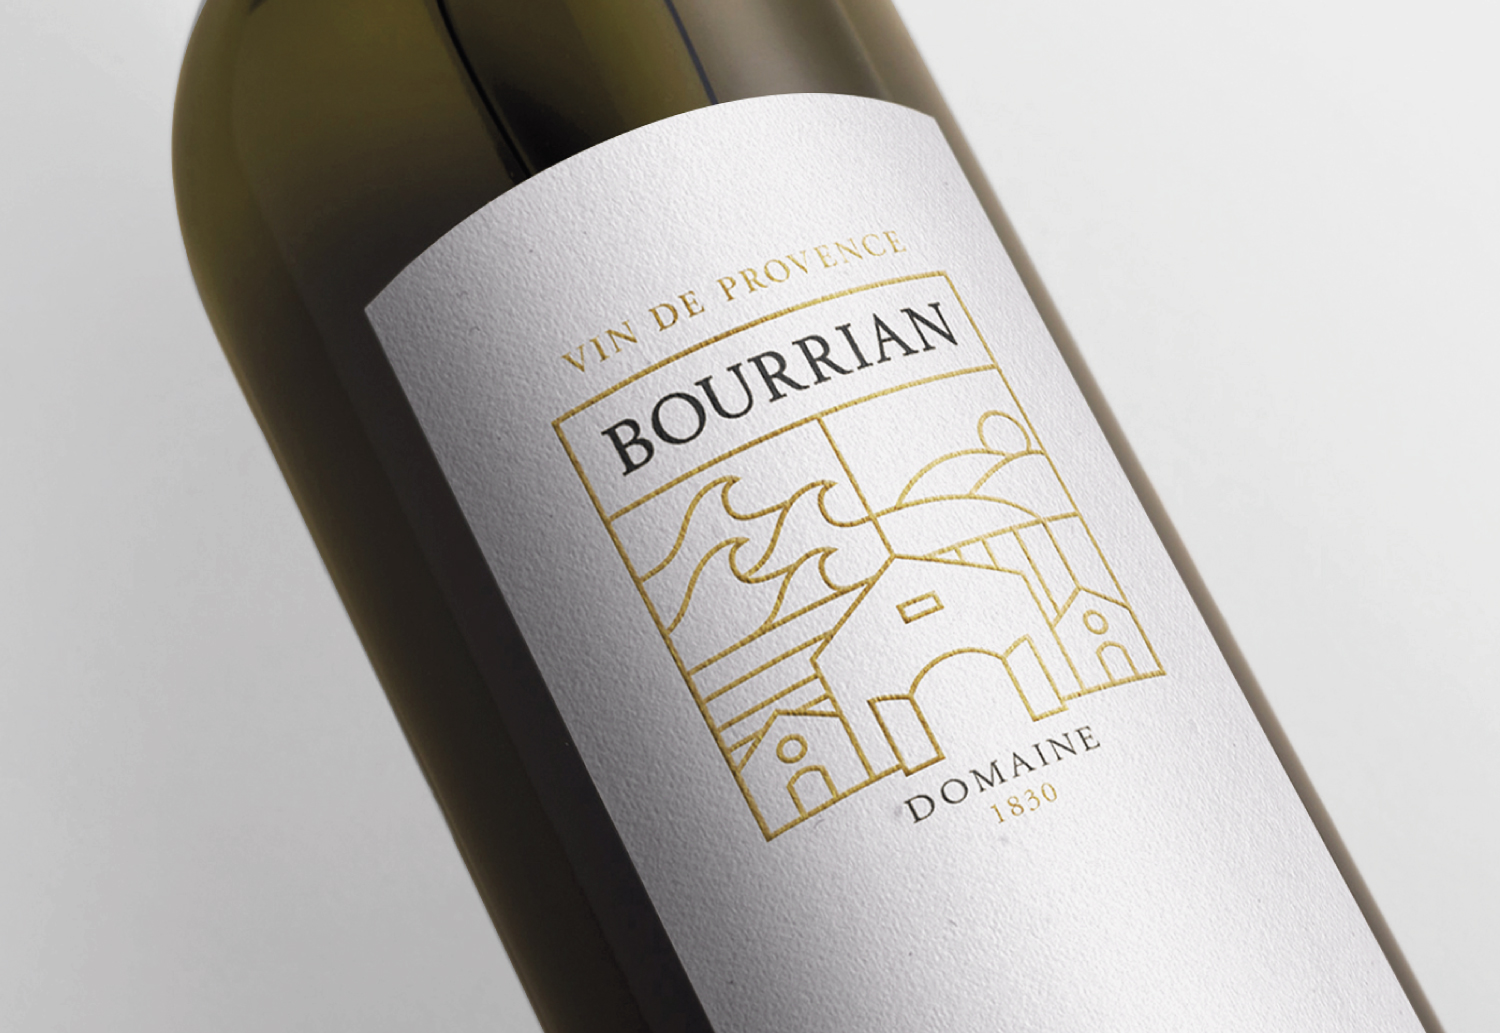 Brand and Label Design for Wine Estate Located in the Southern France